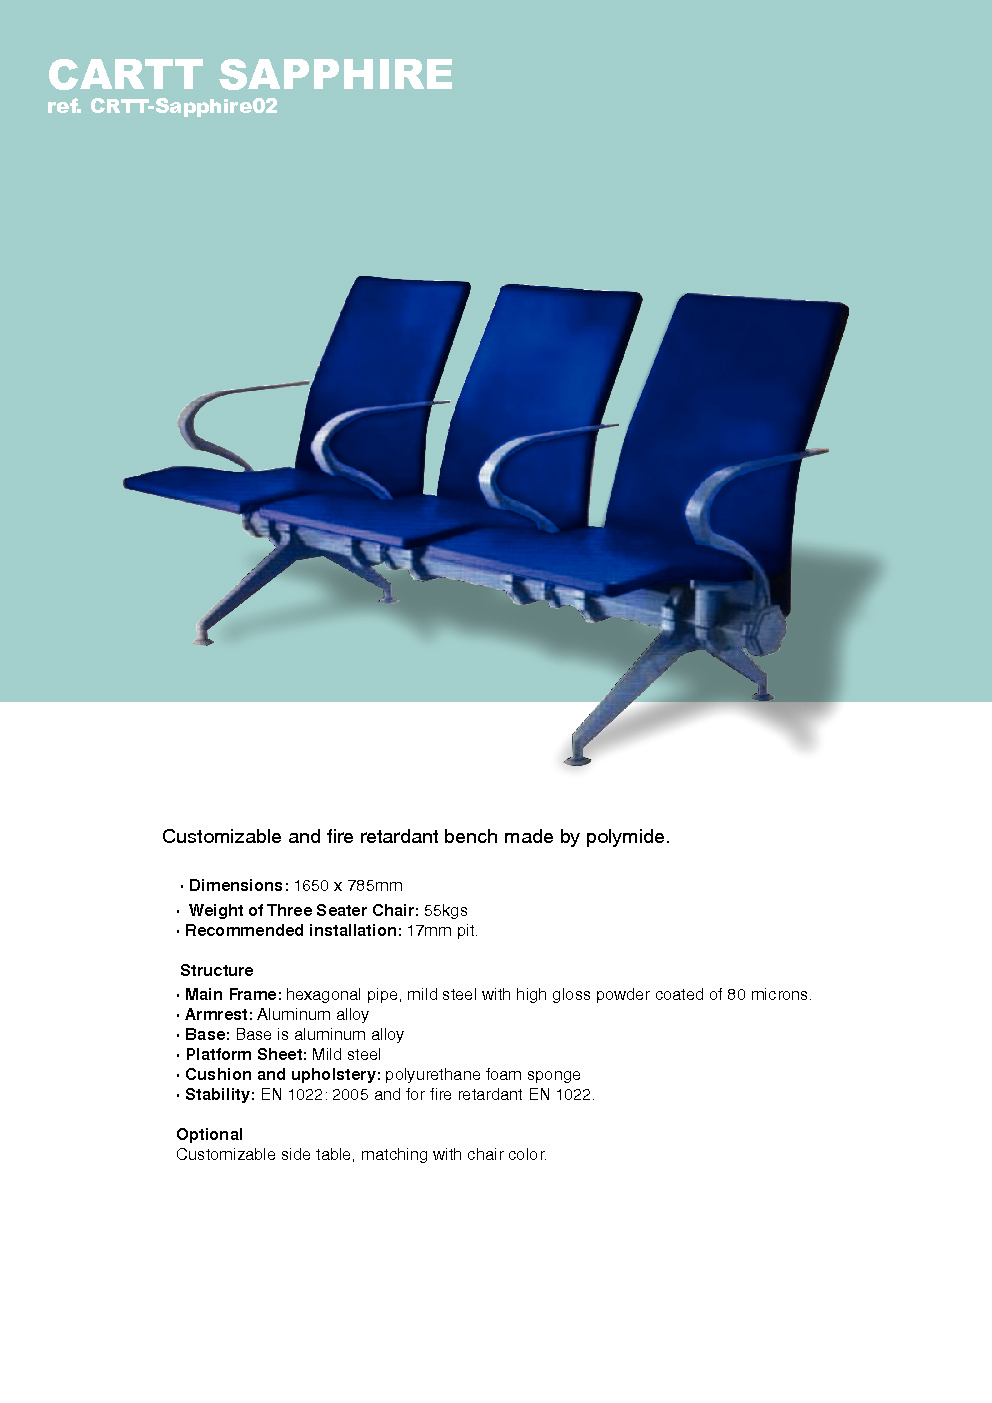 carttec airport sapphire benches